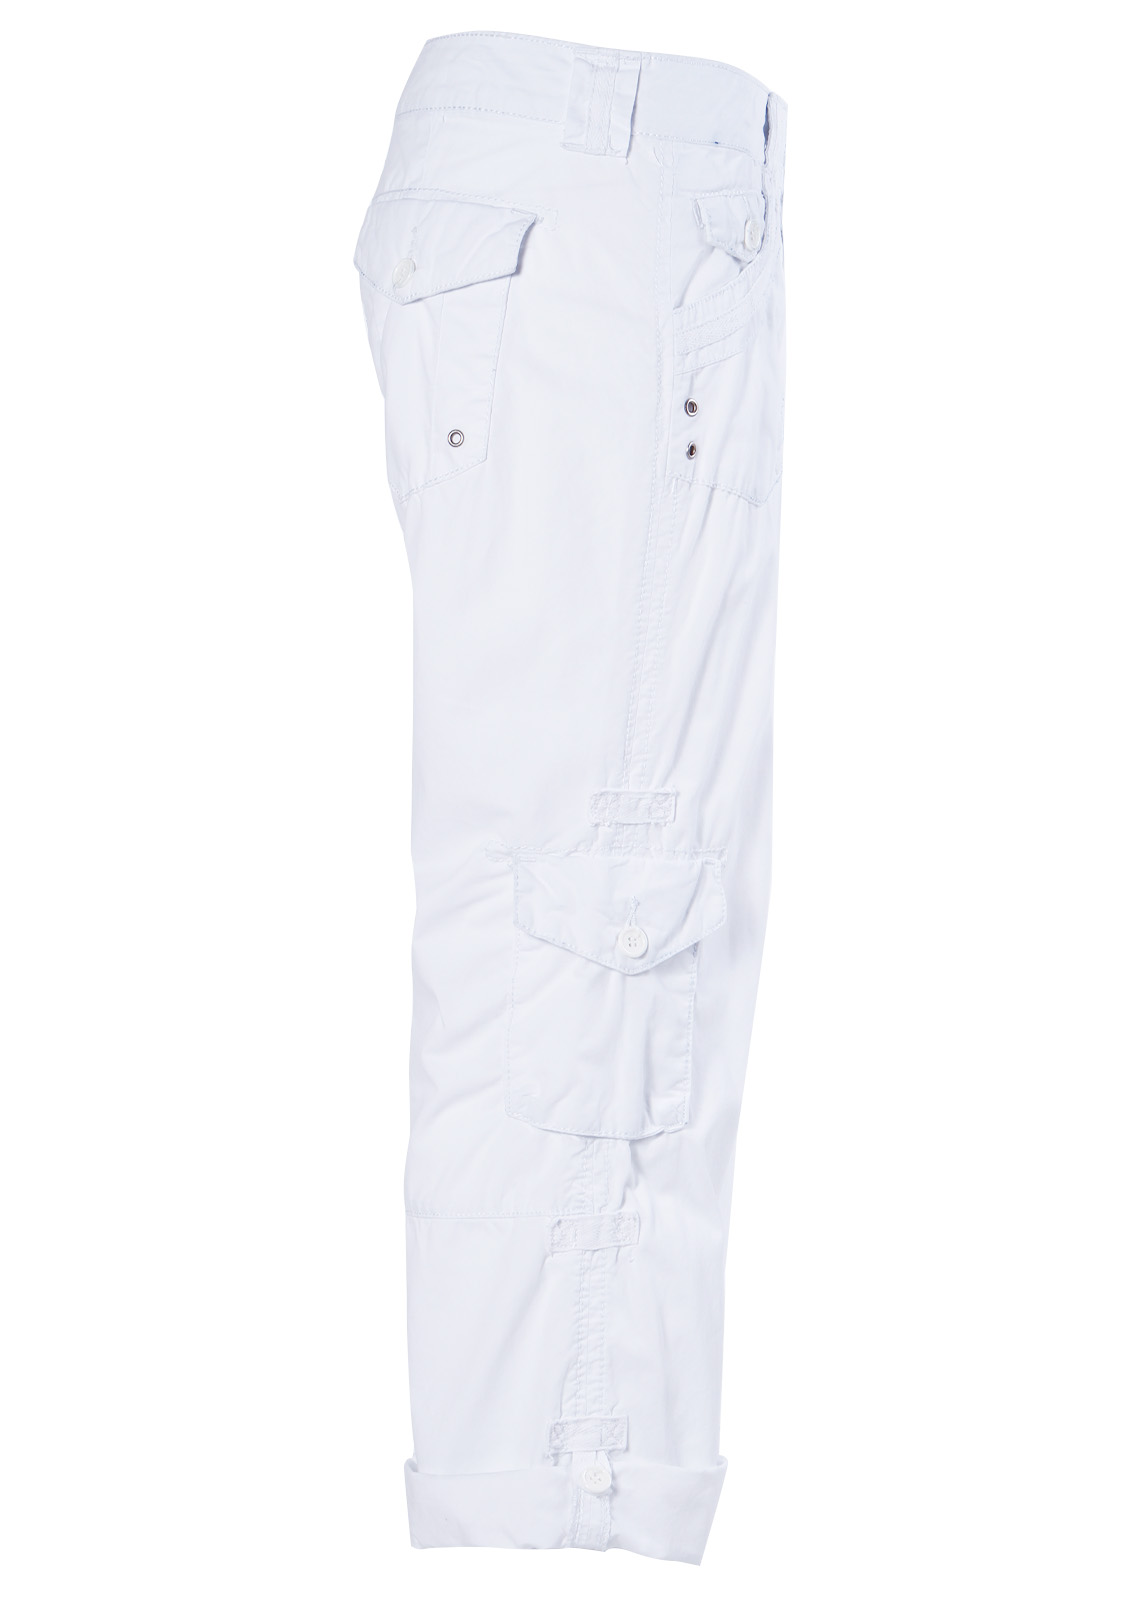 Awesome Deja Blue White Cargo Capri Pants  Zulily